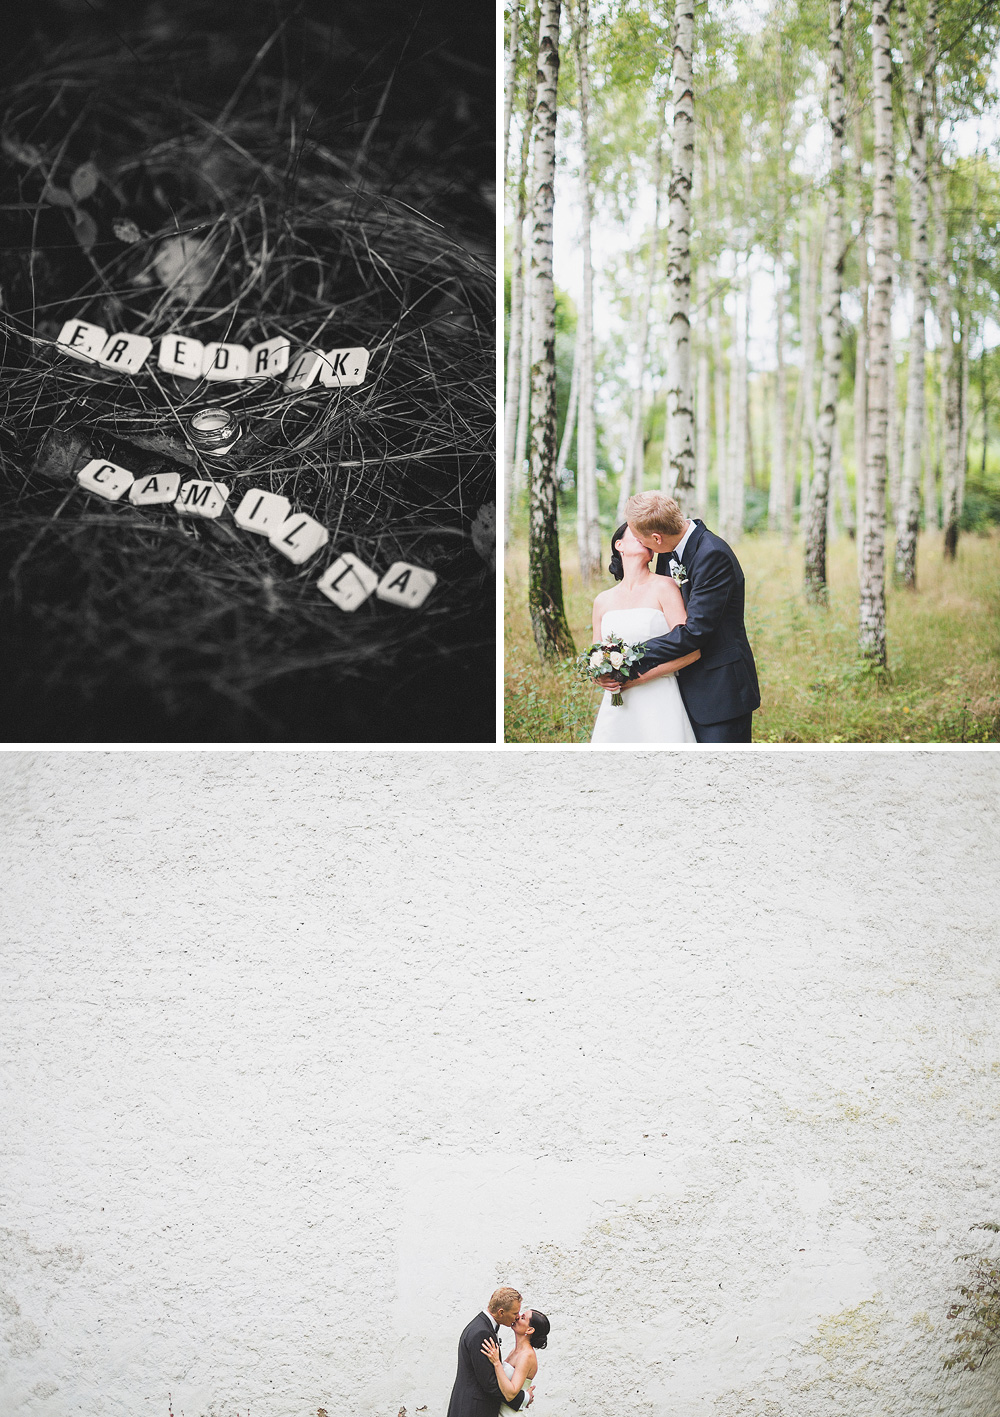 Another preview of Camilla and Fredrik   weddings